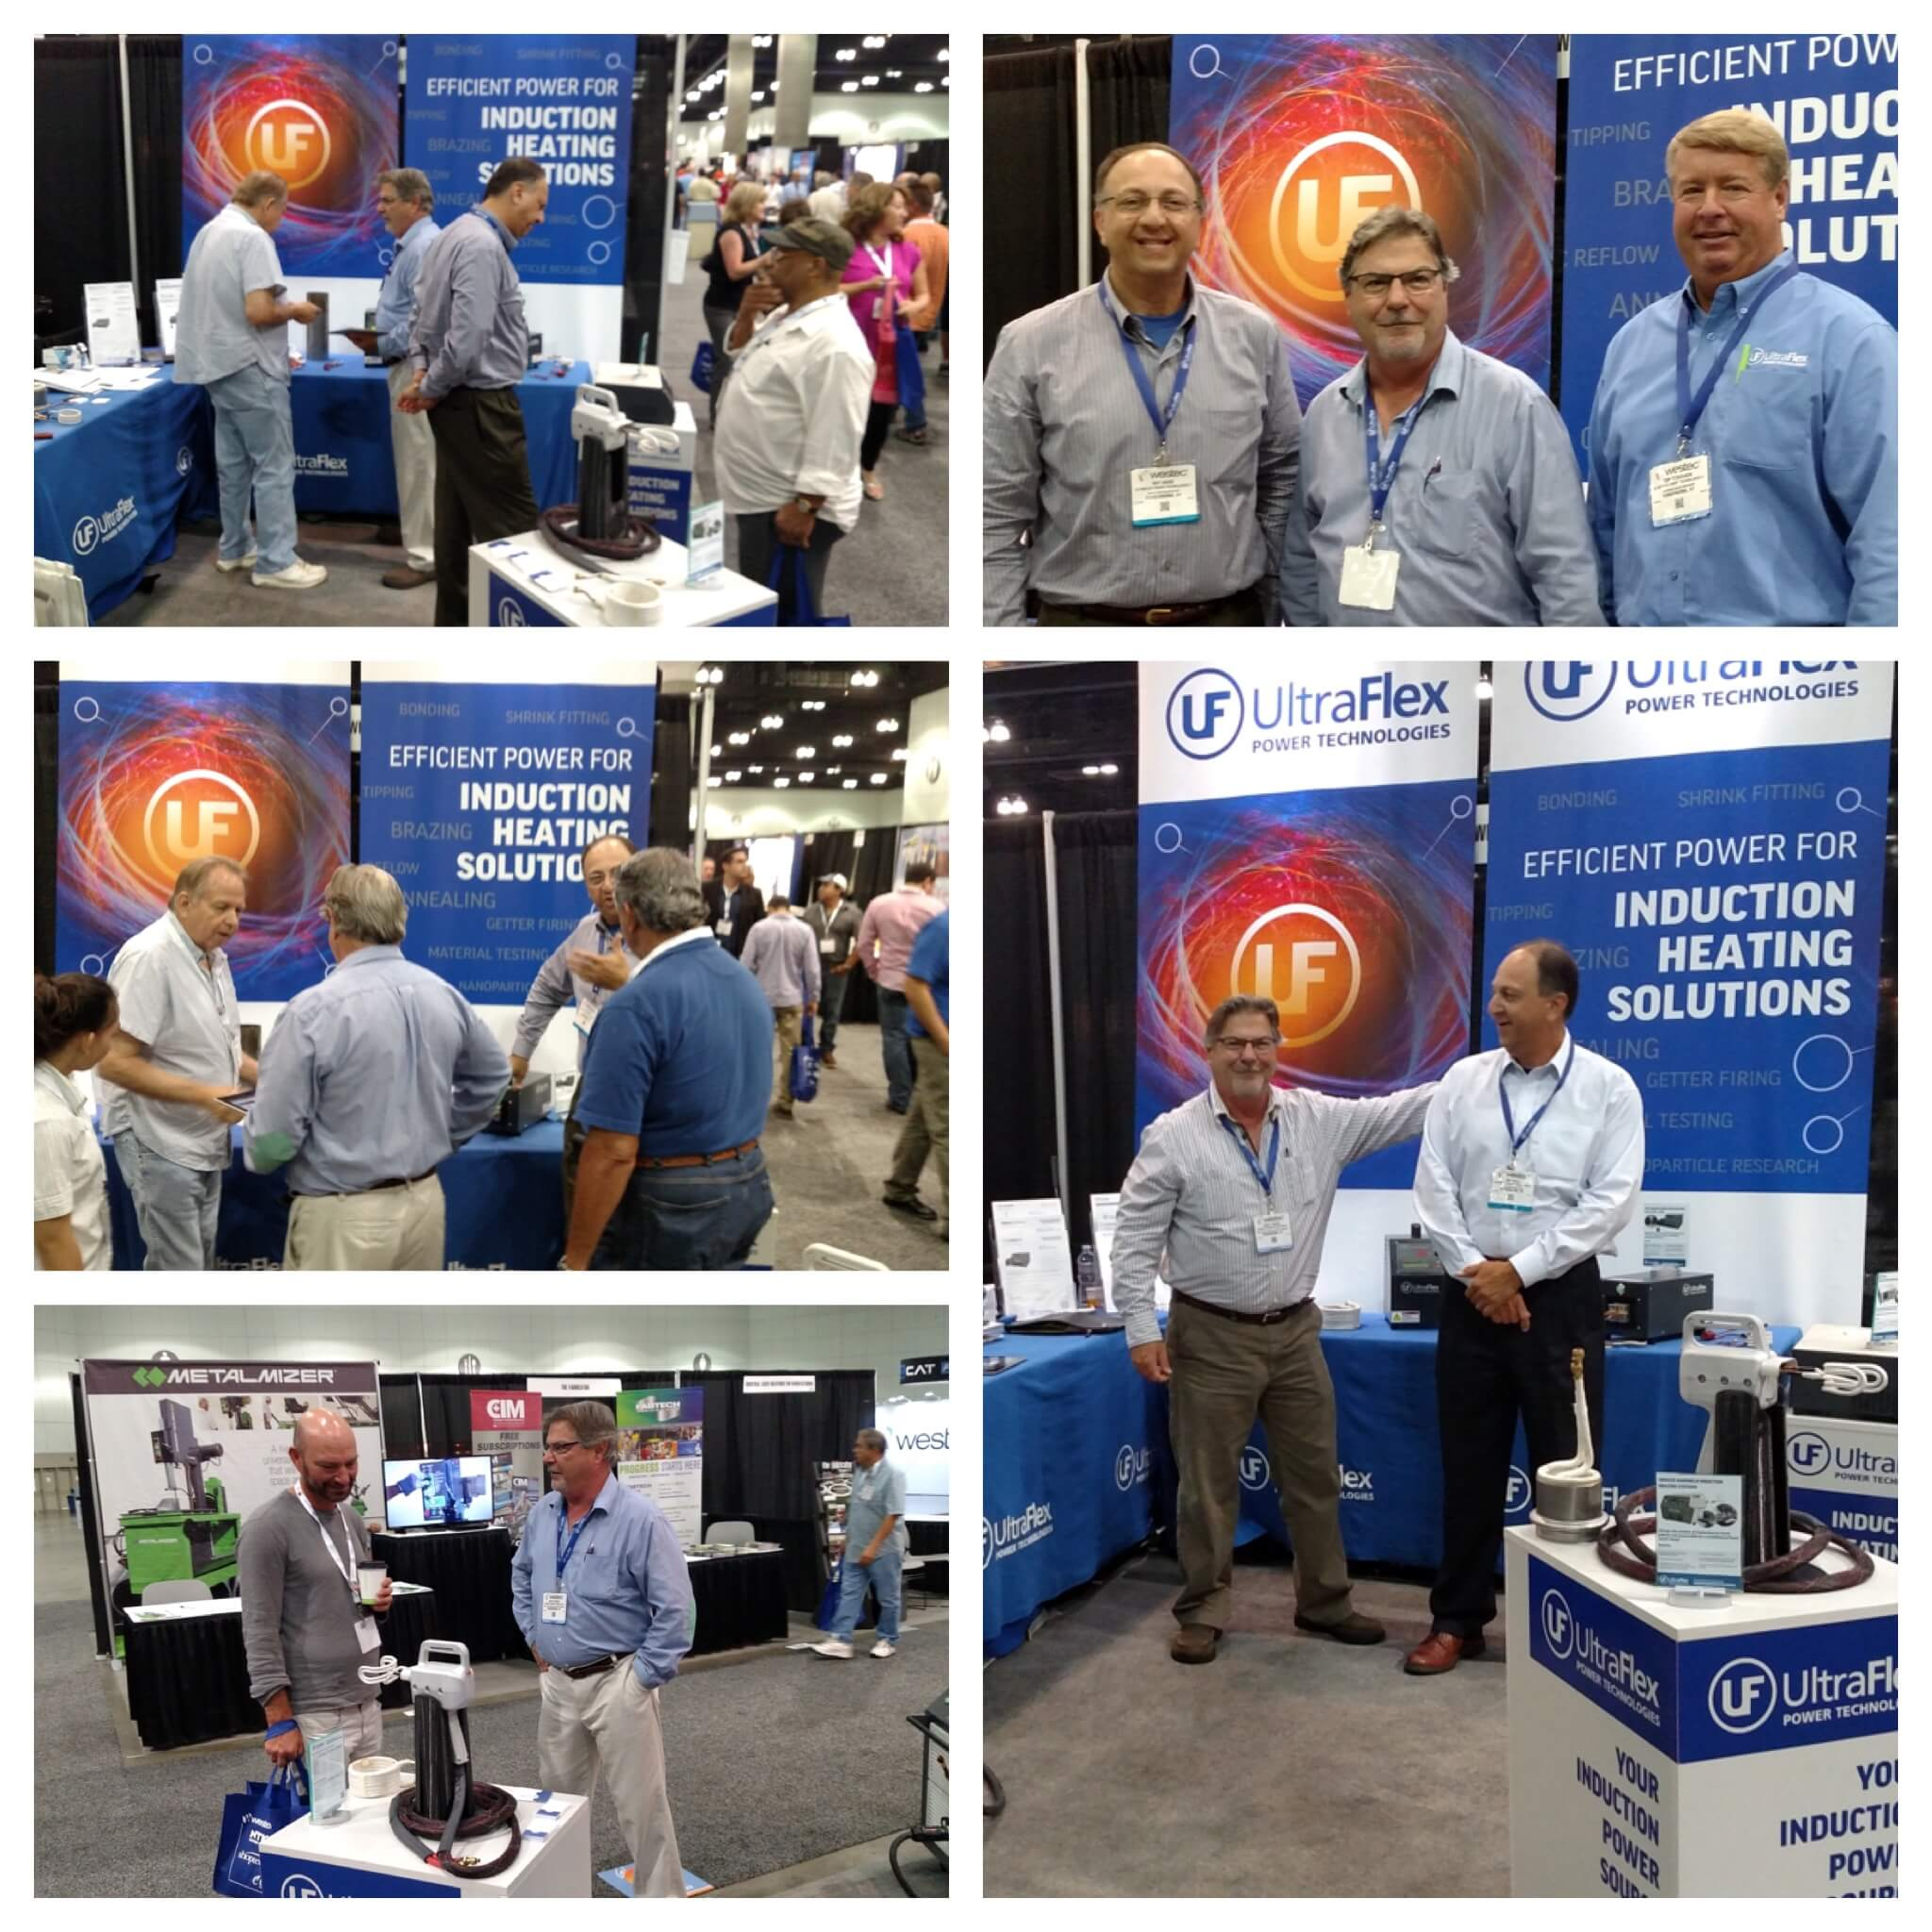 Ultraflex Team at Westec